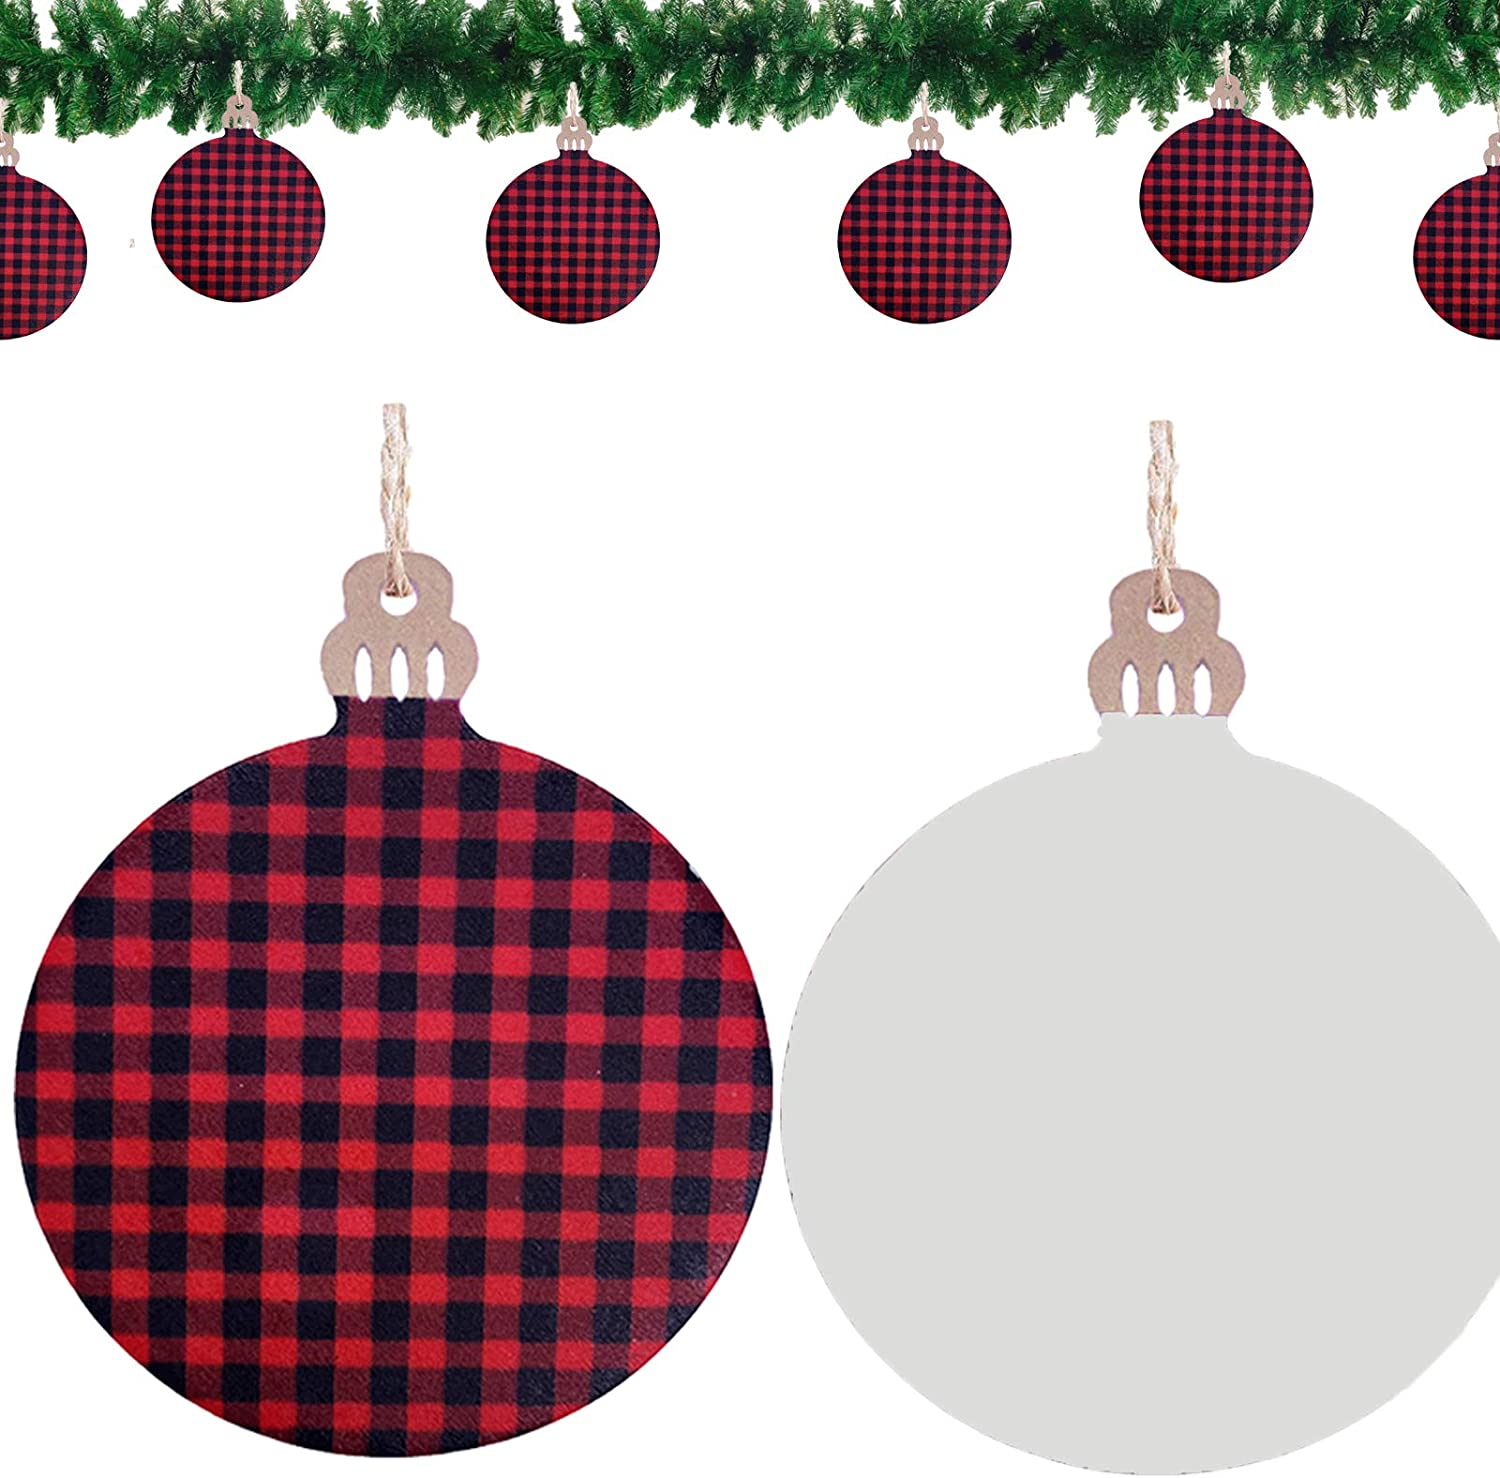 48 Pieces Buffalo Plaid Predrilled Wood Slices 48 Pieces Twine Round Wooden Discs with Holes for Holiday Hanging Embellishments,Christmas DIY Crafts 96 Pieces Christmas Wood Slice Twine Ornament Set